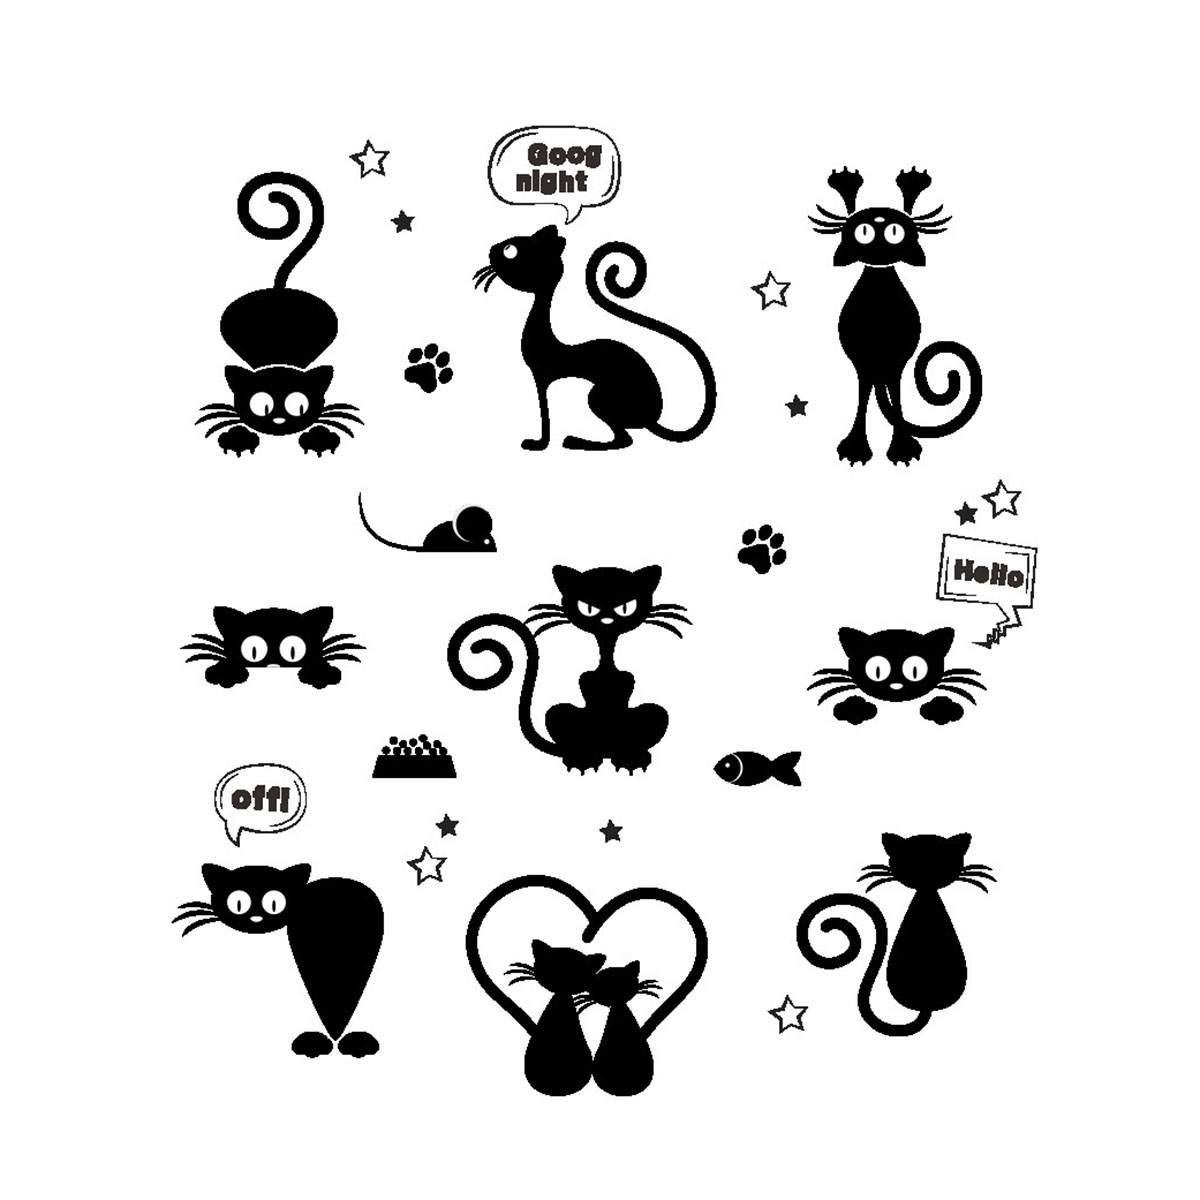 Removable Wall Stickers Cartoon Black Cat Light Switch Stickers Vinyl Wallpapers DIY Decor Decals for Art Mural Baby Nursery Room